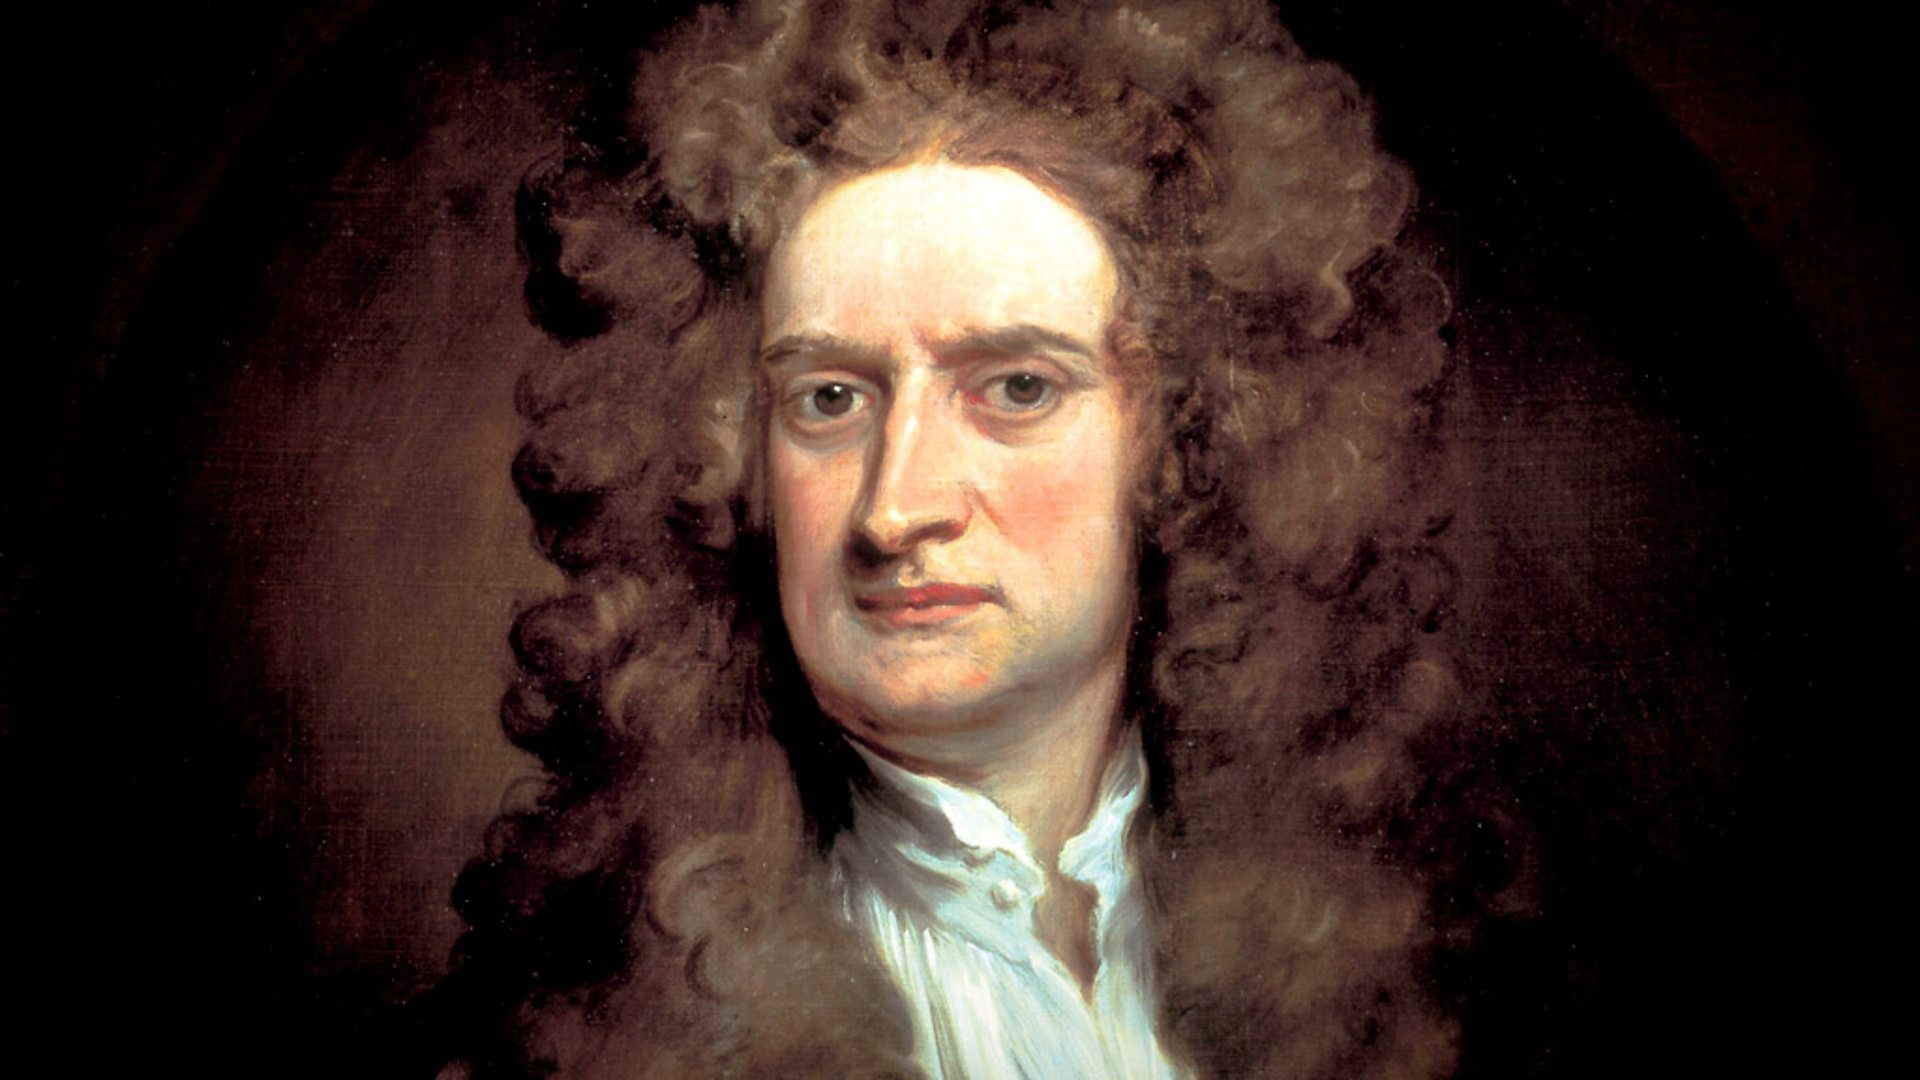 essay on isaac newton Free essay: isaac newton was born on january 4, 1643 in woolsthorpe, england  where he grew up his father, also named isaac newton, was a prosperous.